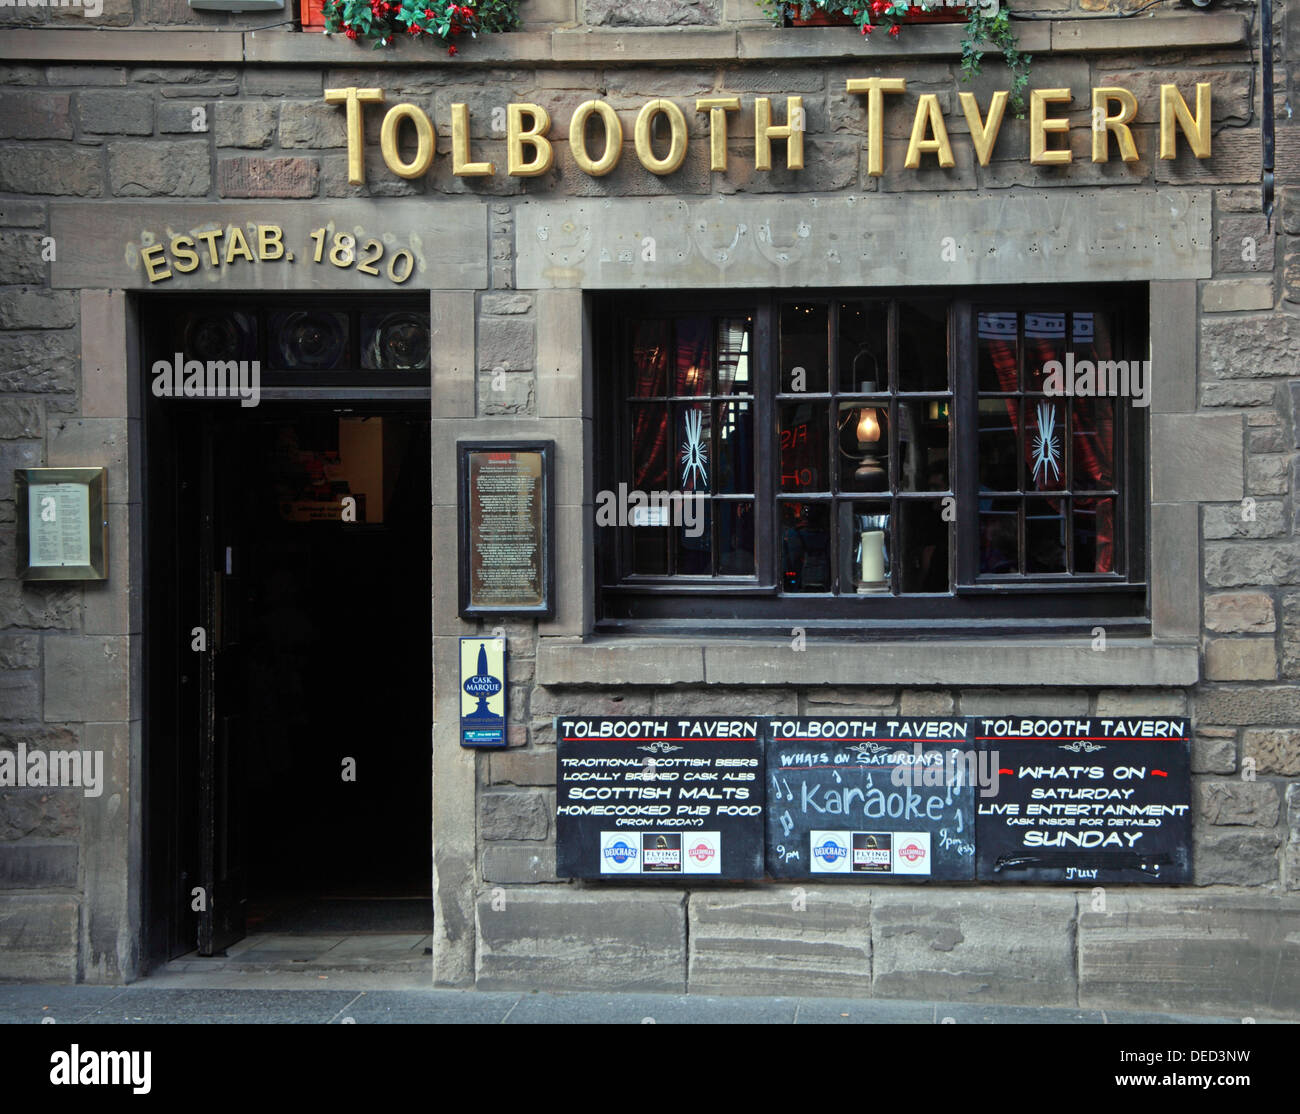 EH1,Scottish,Scot,scots,independance,independence,pubs,1820,cask,marque,boards,outside,blackboards,with,menu,menus,speccials,food,entertainment,Canongate,Tolbooth,is,a,historic,landmark,of,the,Old,Town,section,of,Edinburgh,Scotland,U.K.,built,in,1591,as,a,courthouse,burgh,Canongate,high,st,Gotonysmith,Council,Chamber,Police,Court,and,Prison,In,1875,the,City,Architect,Robert,Morham,completely,restored,and,remodelled,the,exterior,giving,it,back,its,medieval,look,(based,on,Gordon,of,Rothiemays,map,of,1647,This,work,included,remodelling,the,interior,to,create,museum,spaces,Rothiemays,street,cannongate,tourist,tourism,travel,traveller,destination,thing,to,see,building,architecture,classic,old,buildings,Buy Pictures of,Buy Images Of,Scotlands History,Scotlands History